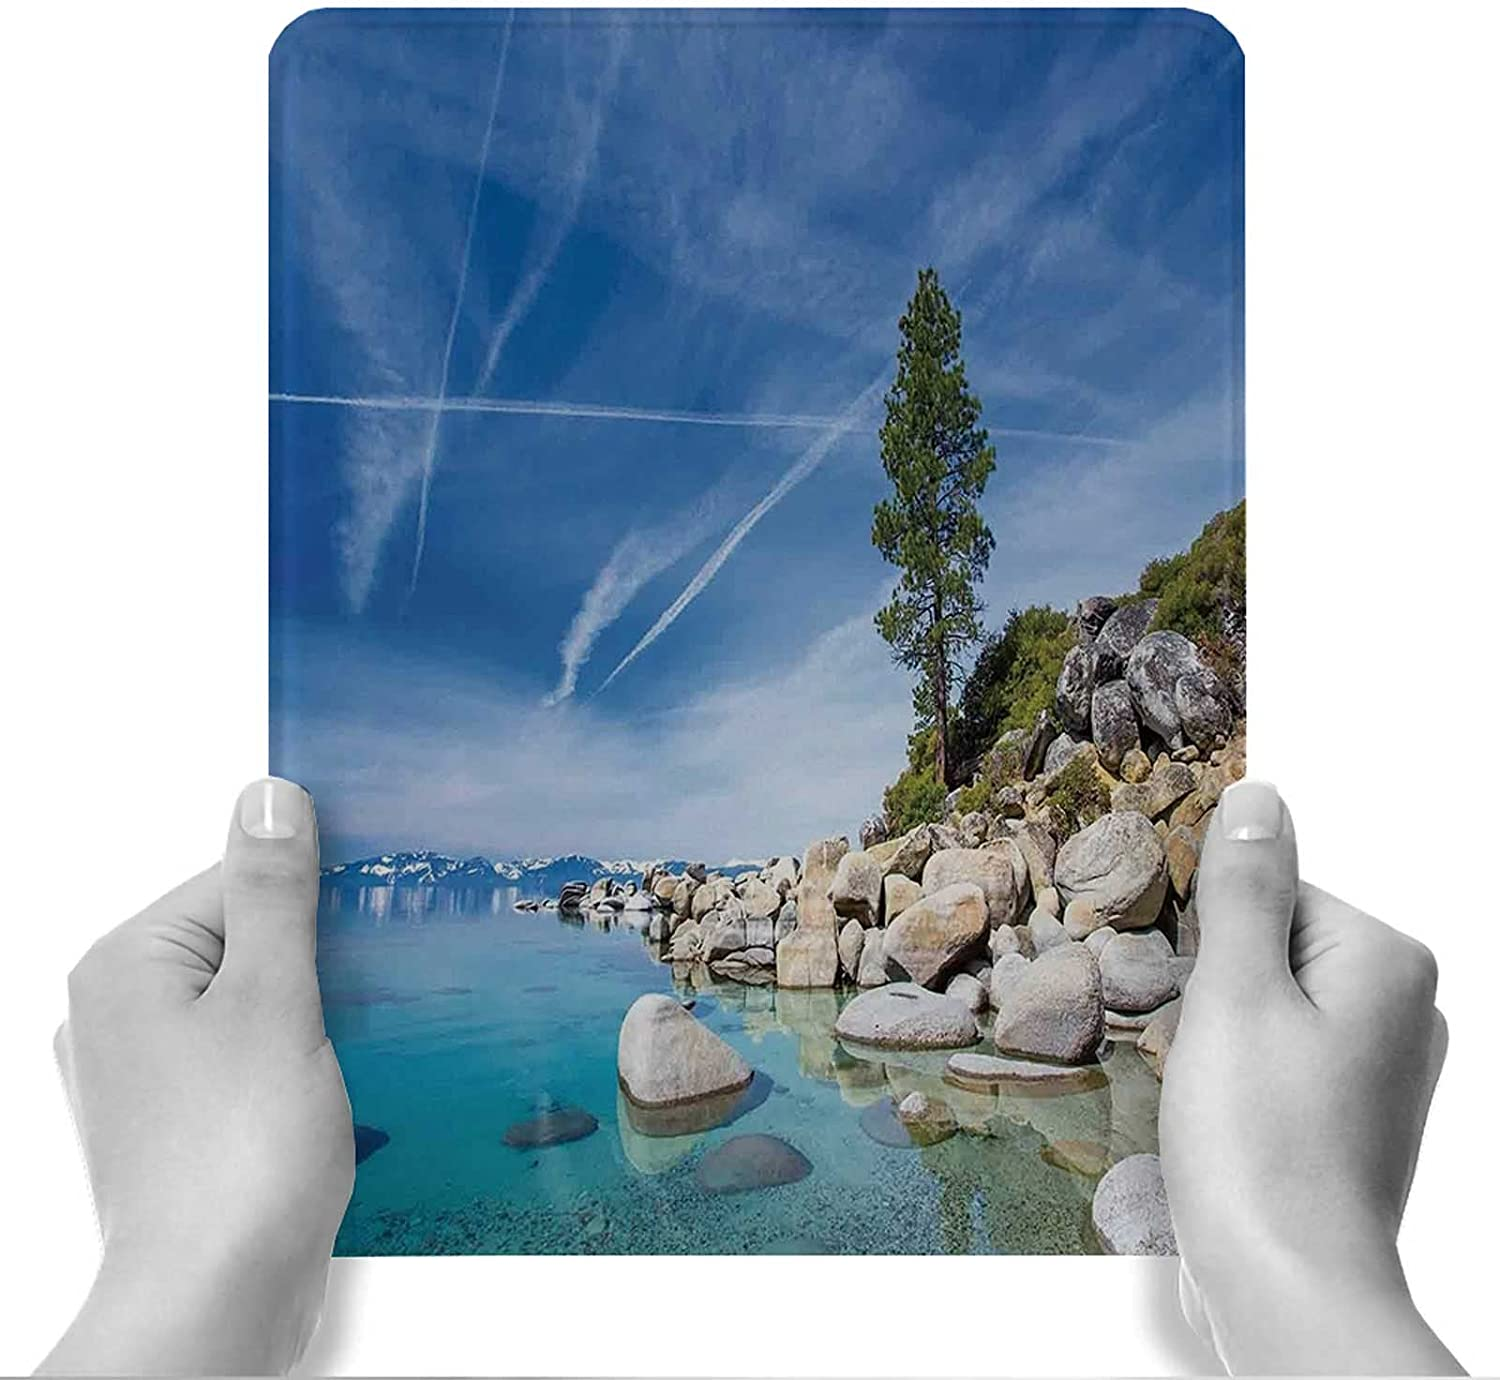 New mail order Free shipping anywhere in the nation Case for iPad Pro 10.5 inch A1709 A1701 ) 2017( Clear Lake